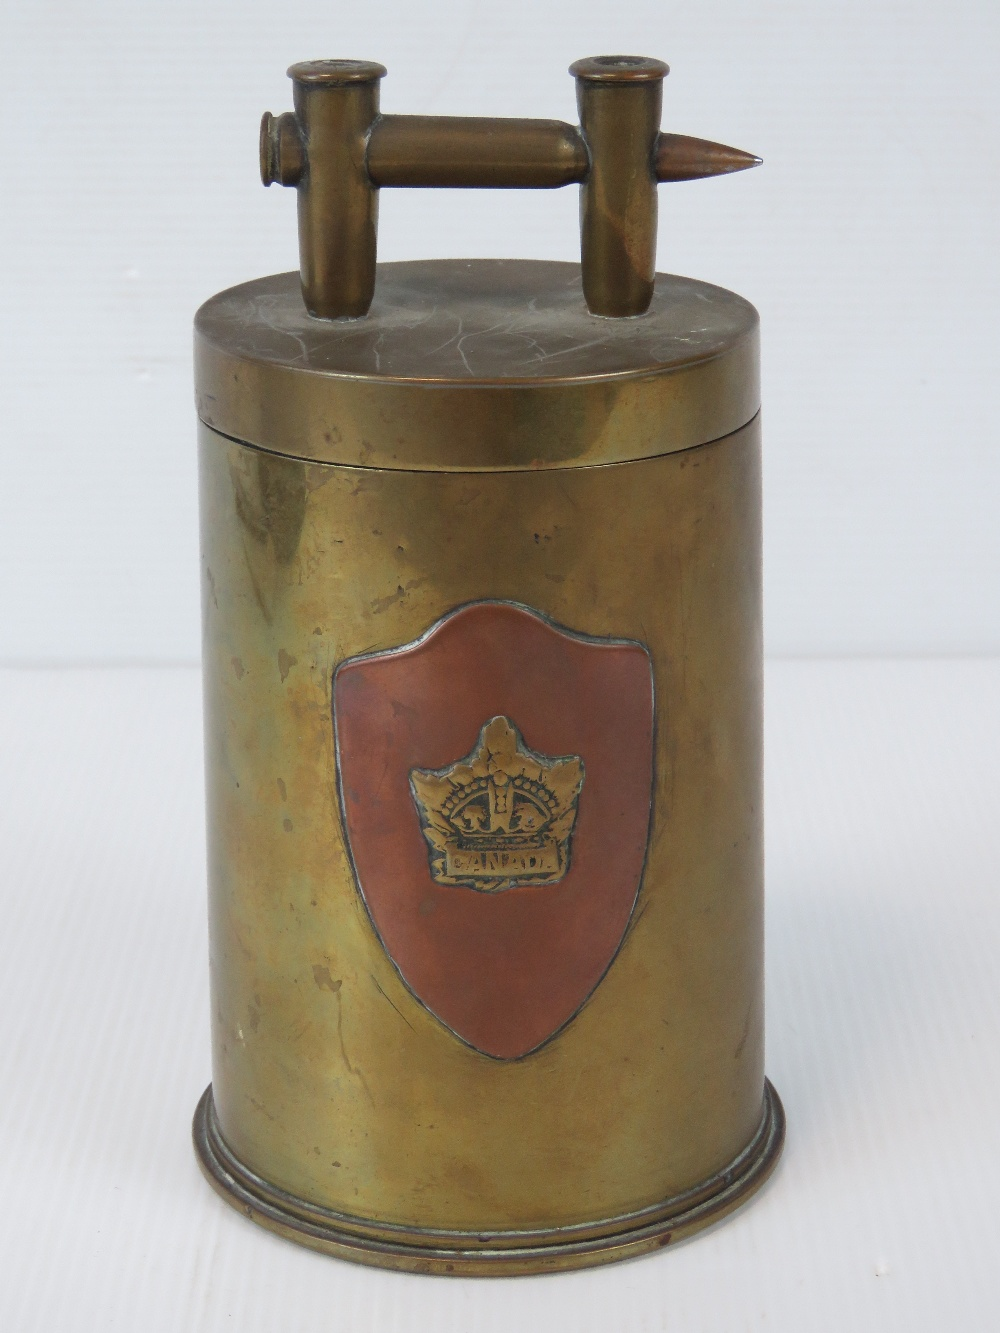 A trench Art shell case lidded pot having Royal Army Services Corps and Canadian Military badges - Image 3 of 5